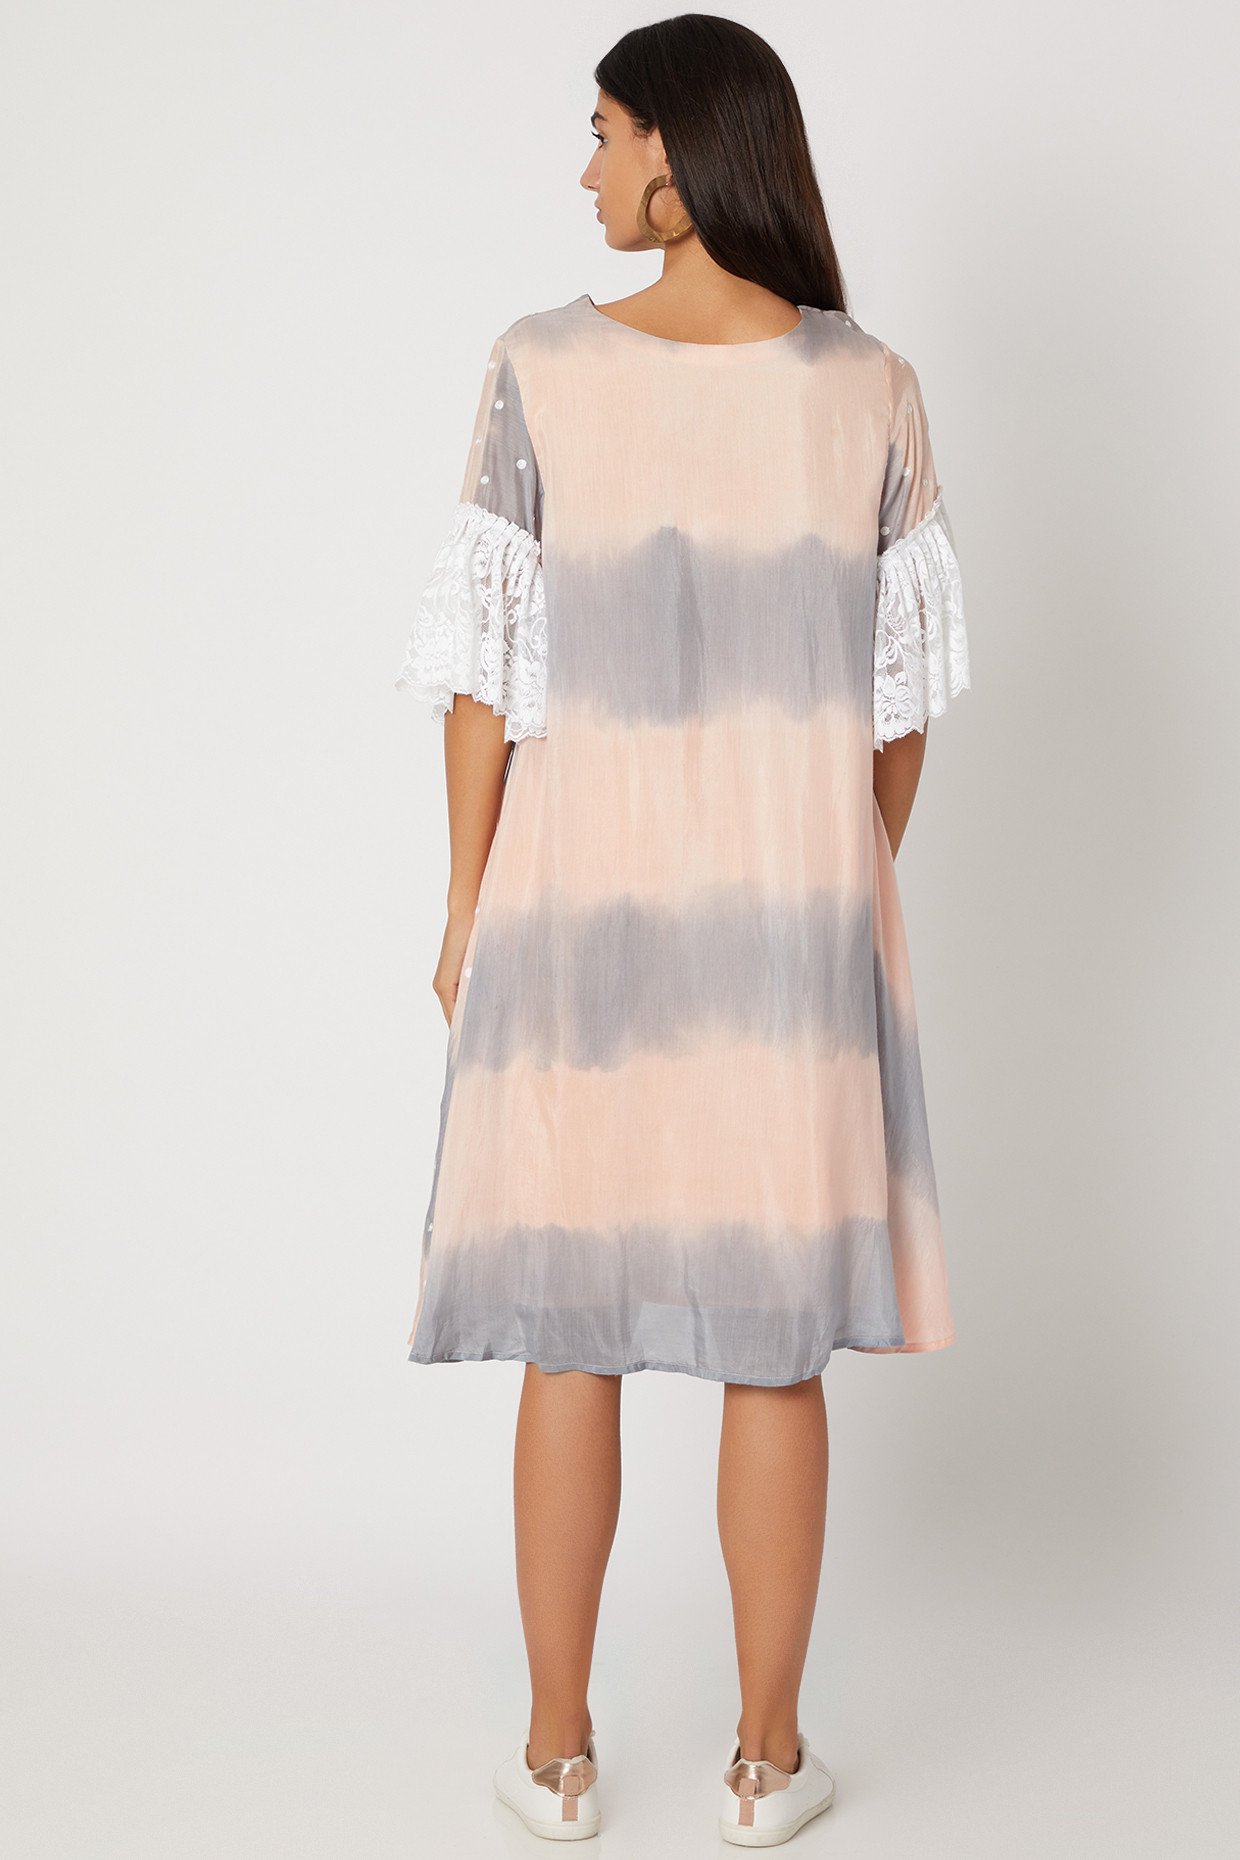 Peach & Grey Handwoven Dress With Polka Dots by Avadh